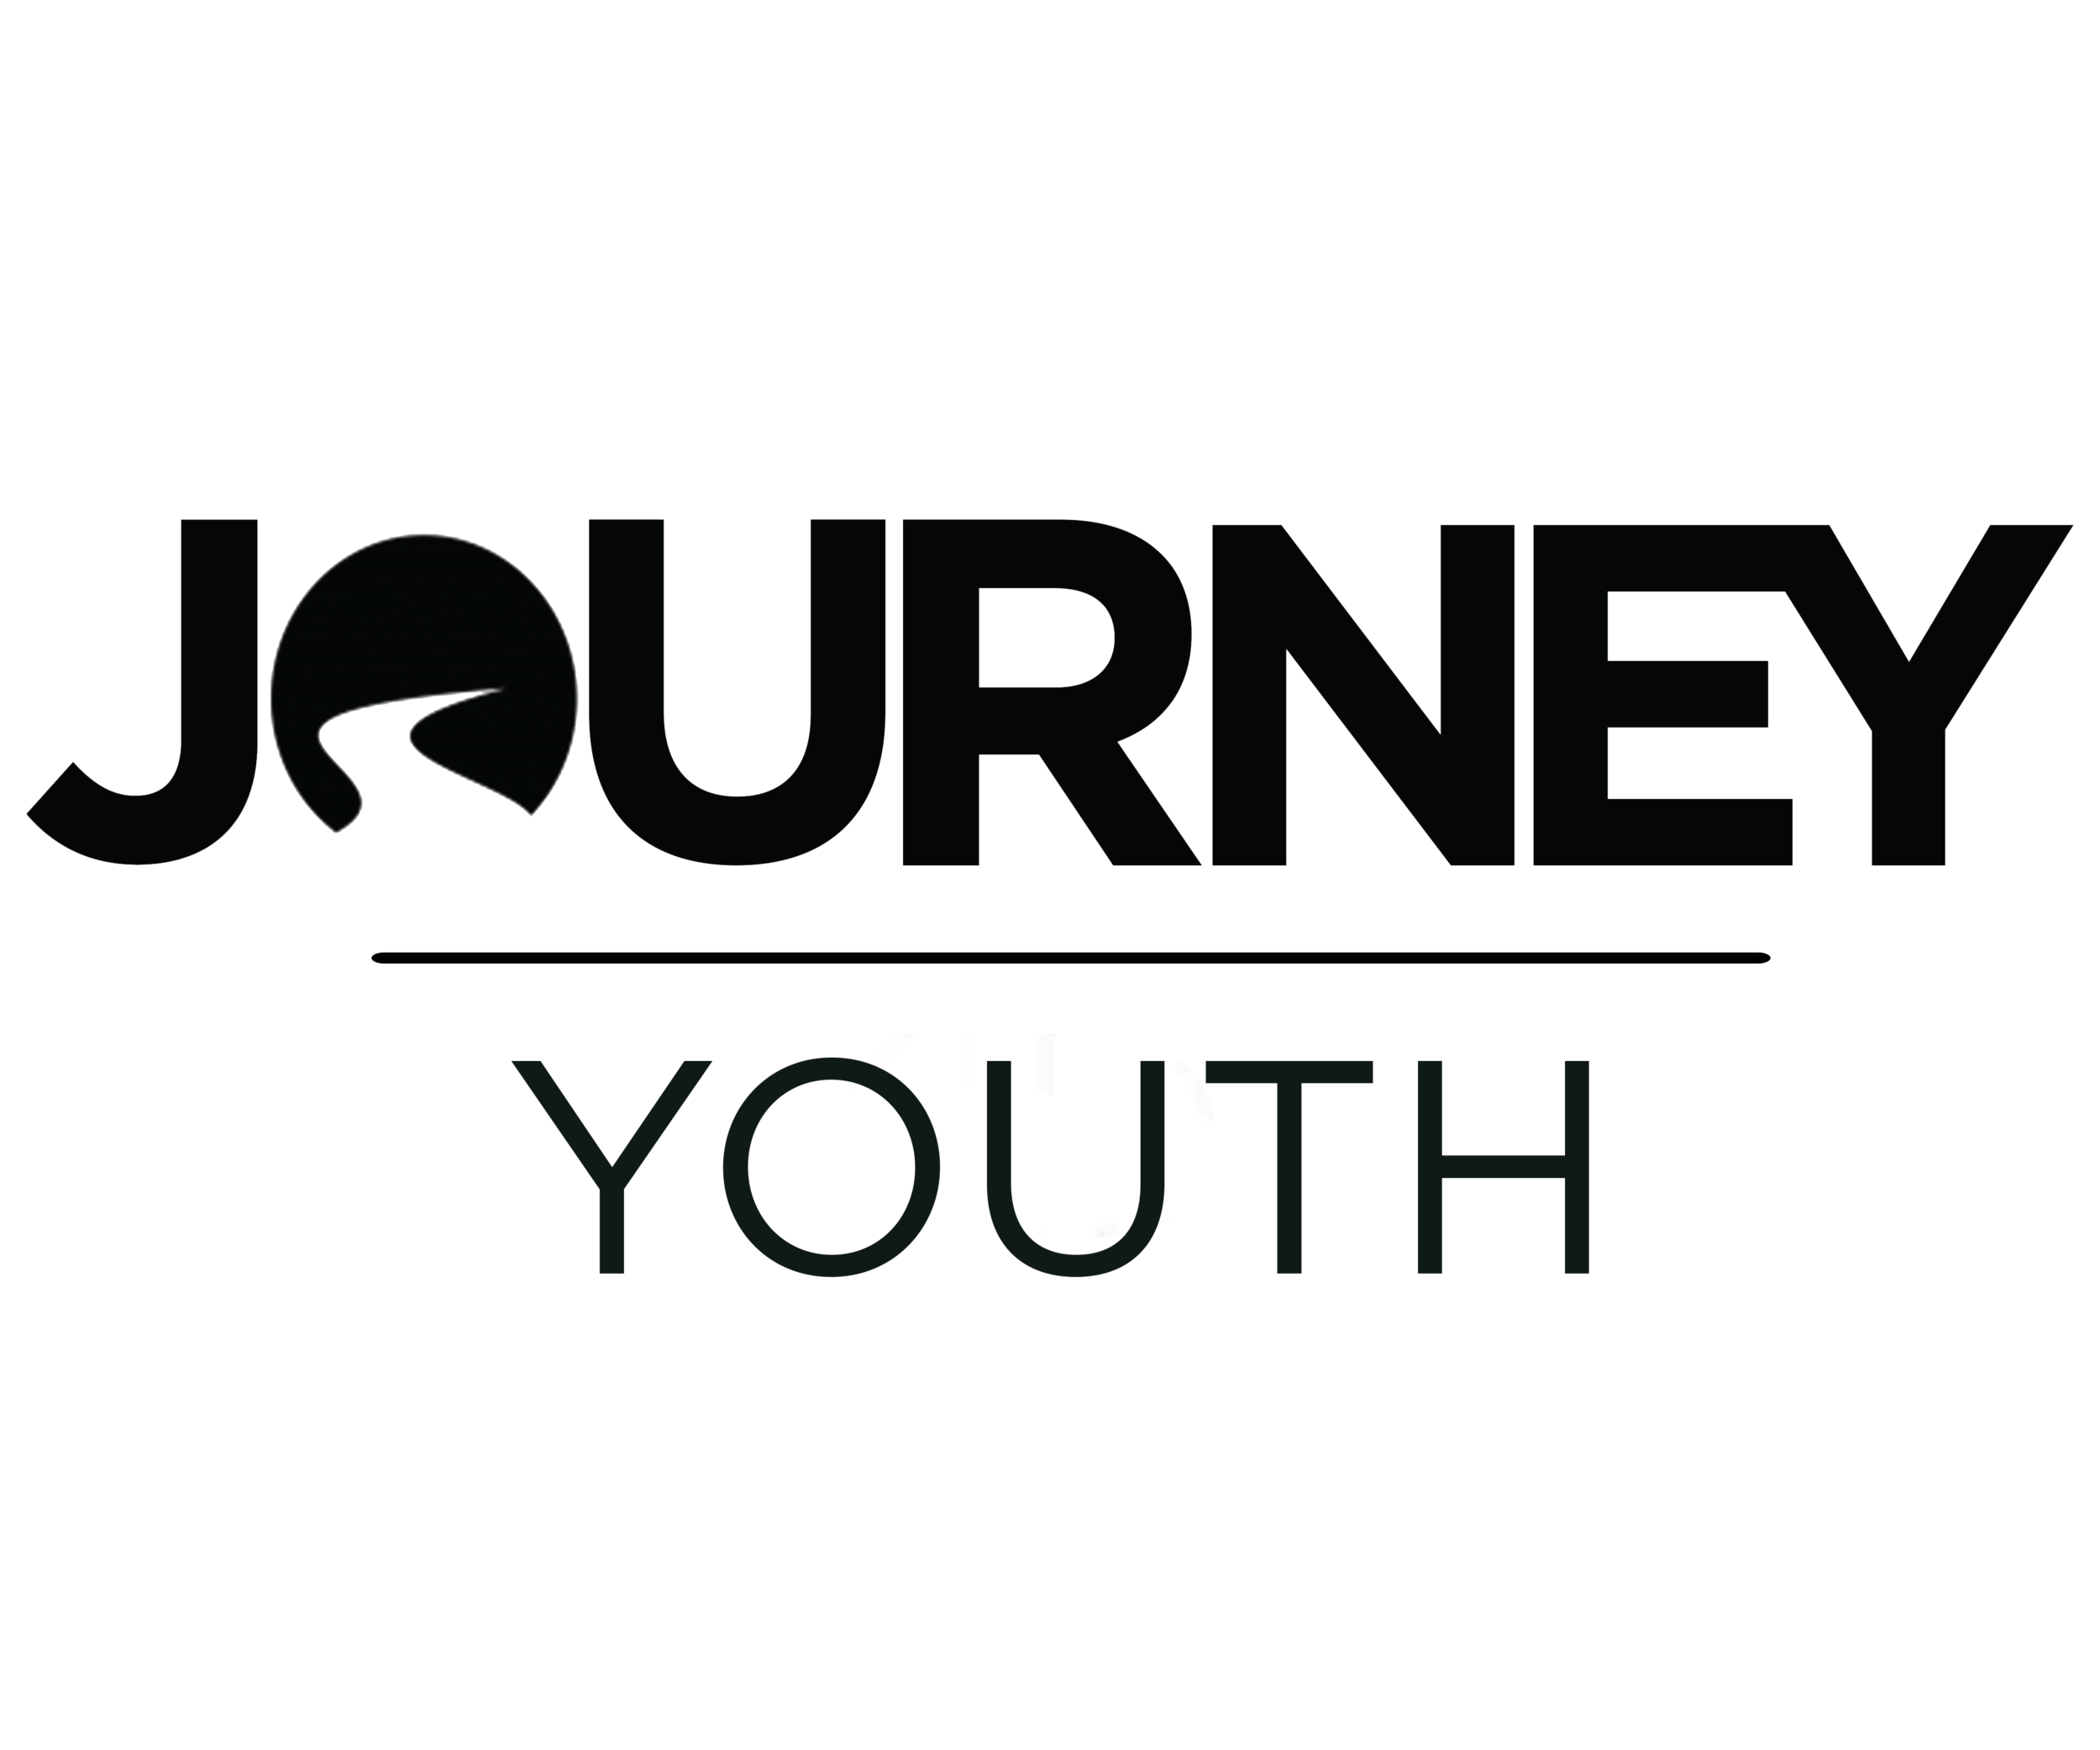 attention students! - If you are going into 7th grade or just finished your Senior year, we invite you to our youth group every Wednesday night @6:30pm-7:30/8pm in our Family Life Center building next door to the Worship Center!Food, live worship, biblical teachings from the best youth leaders, a newly renovated gym and a wonderful cafe to hang out in!